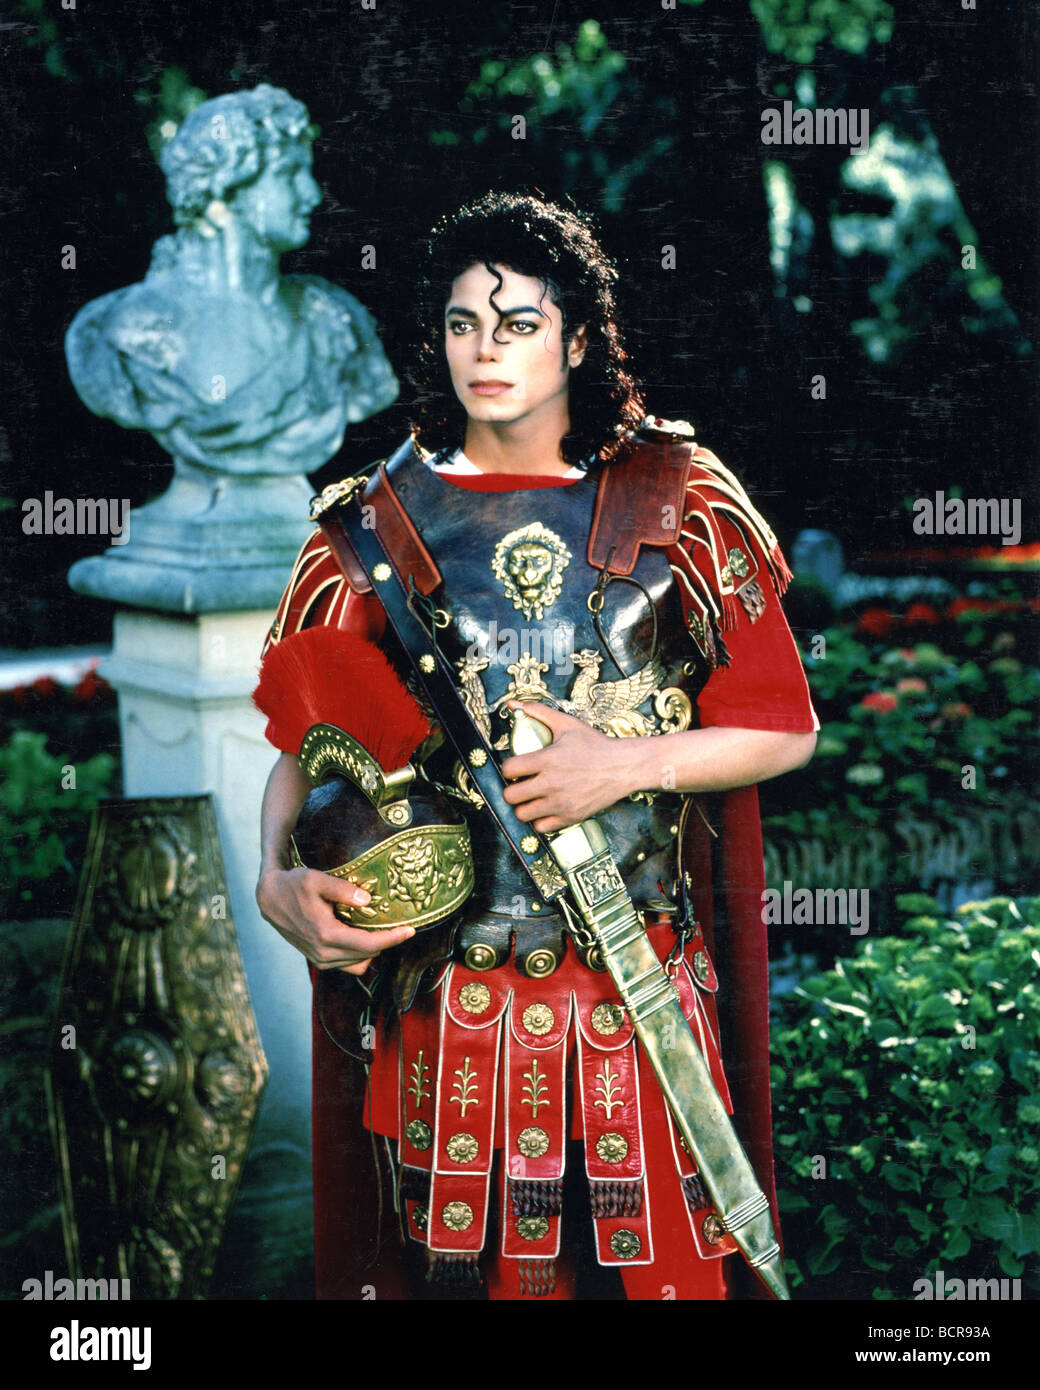 MICHAEL JACKSON as a Roman soldier about 1983 - Stock Image